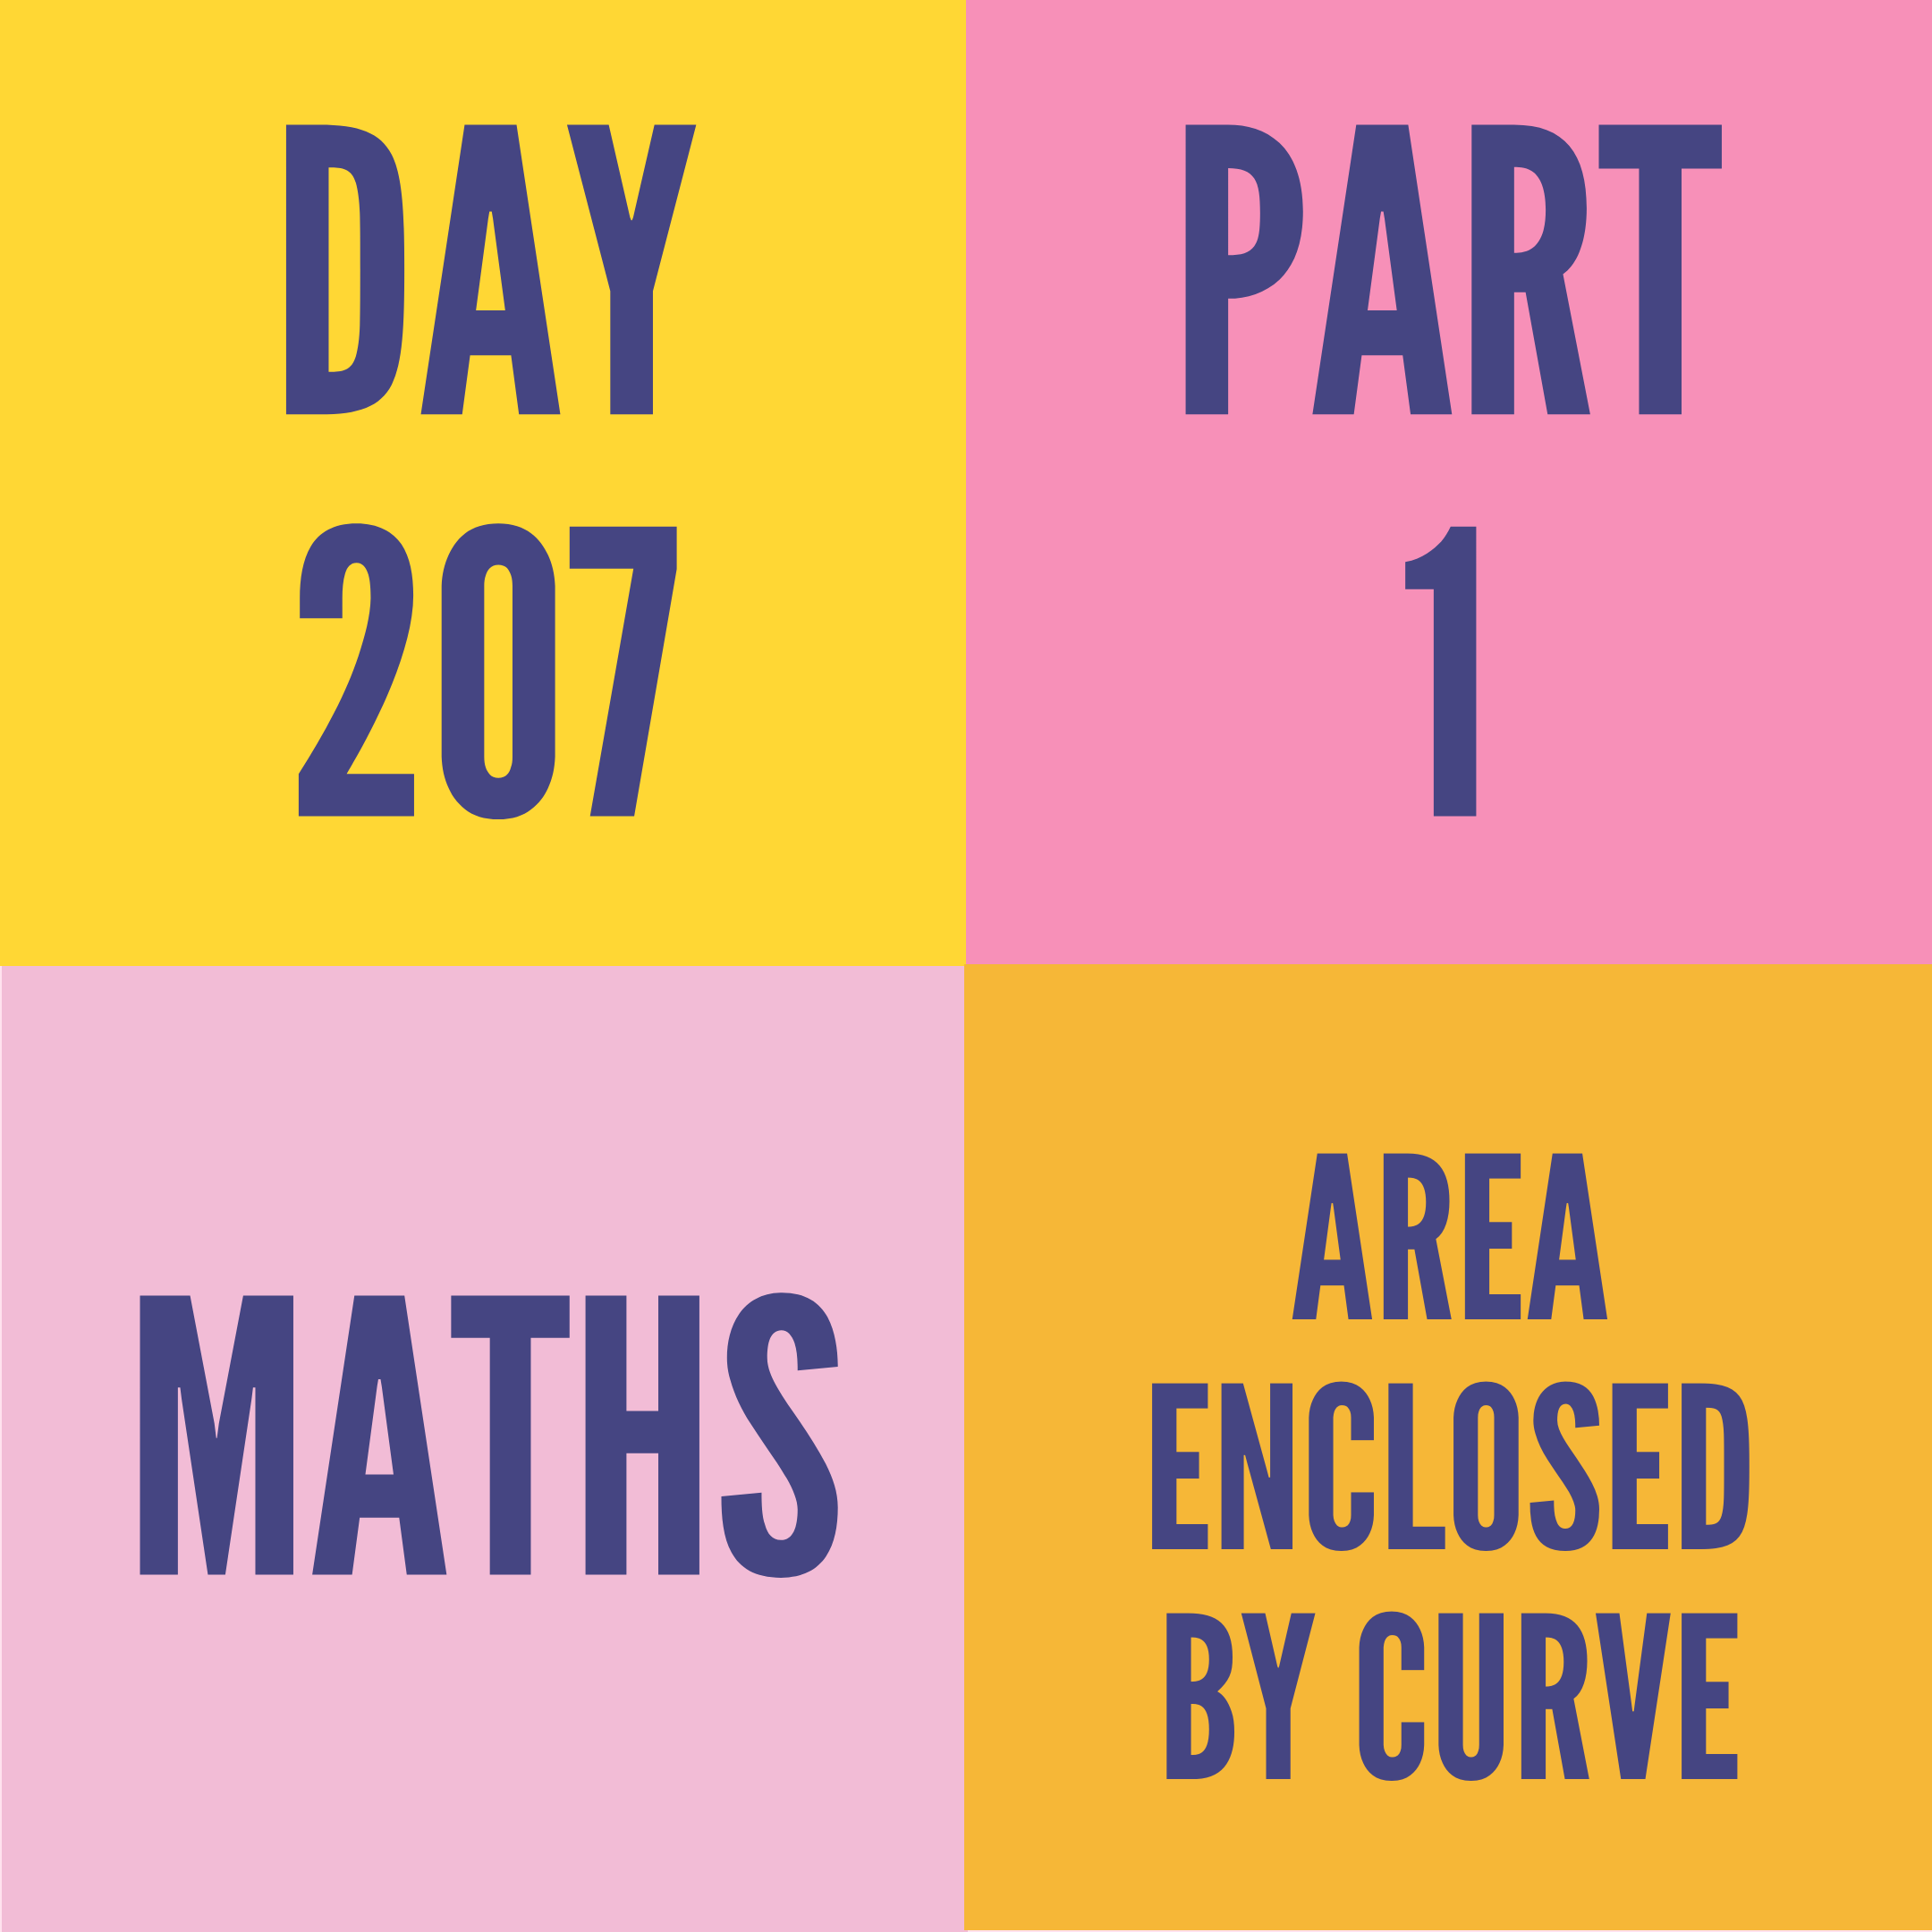 DAY-207 PART-1 AREA ENCLOSED BY CURVE